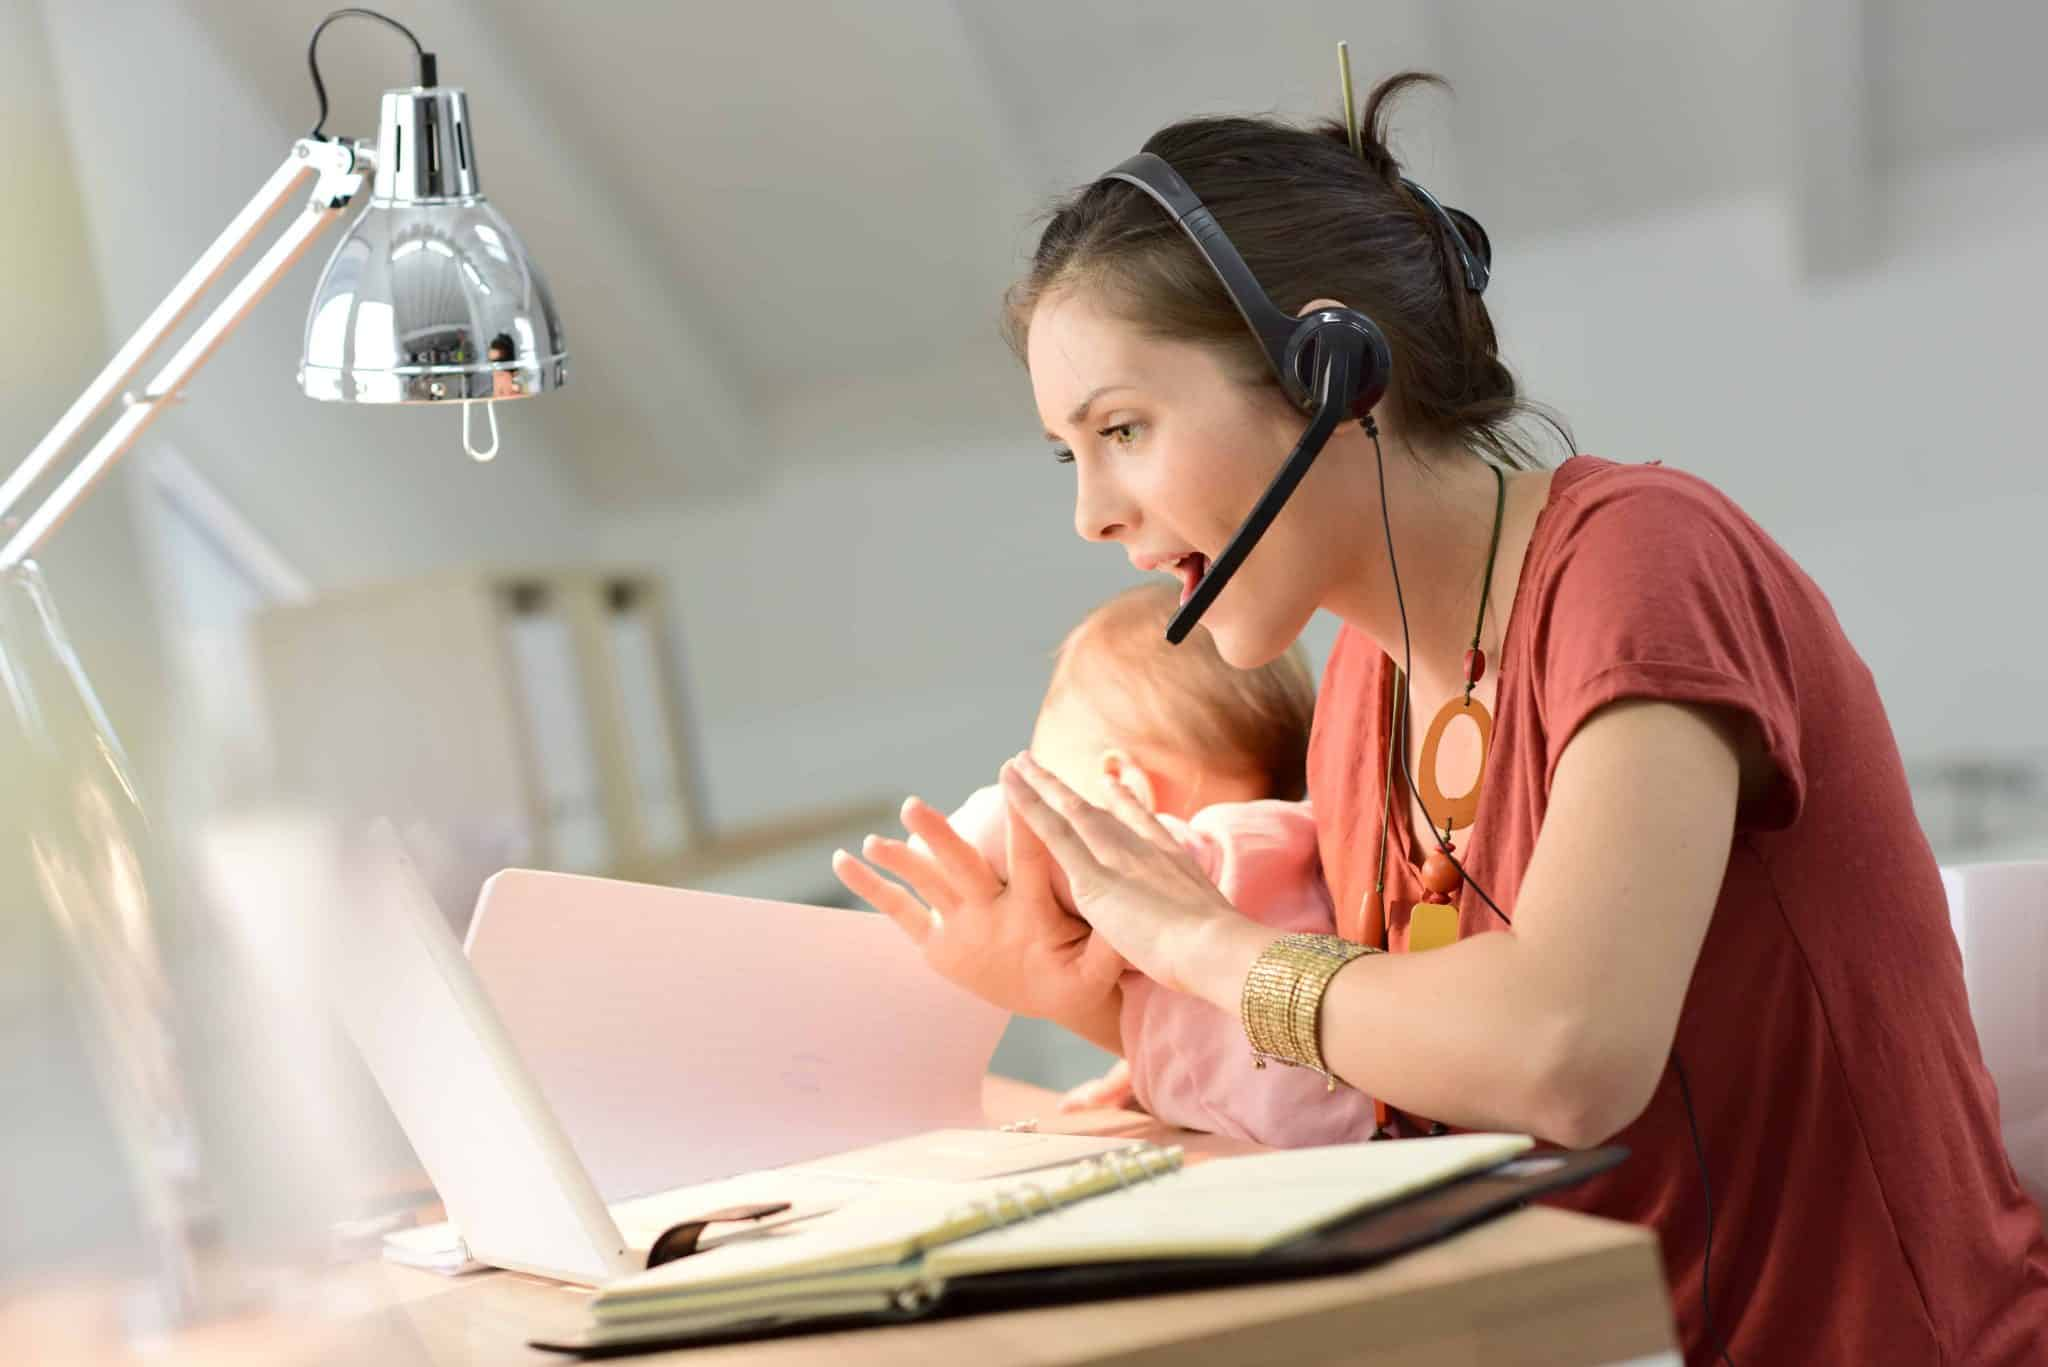 work from home jobs for mums - a woman teaching English online wearing a headset and holding a baby